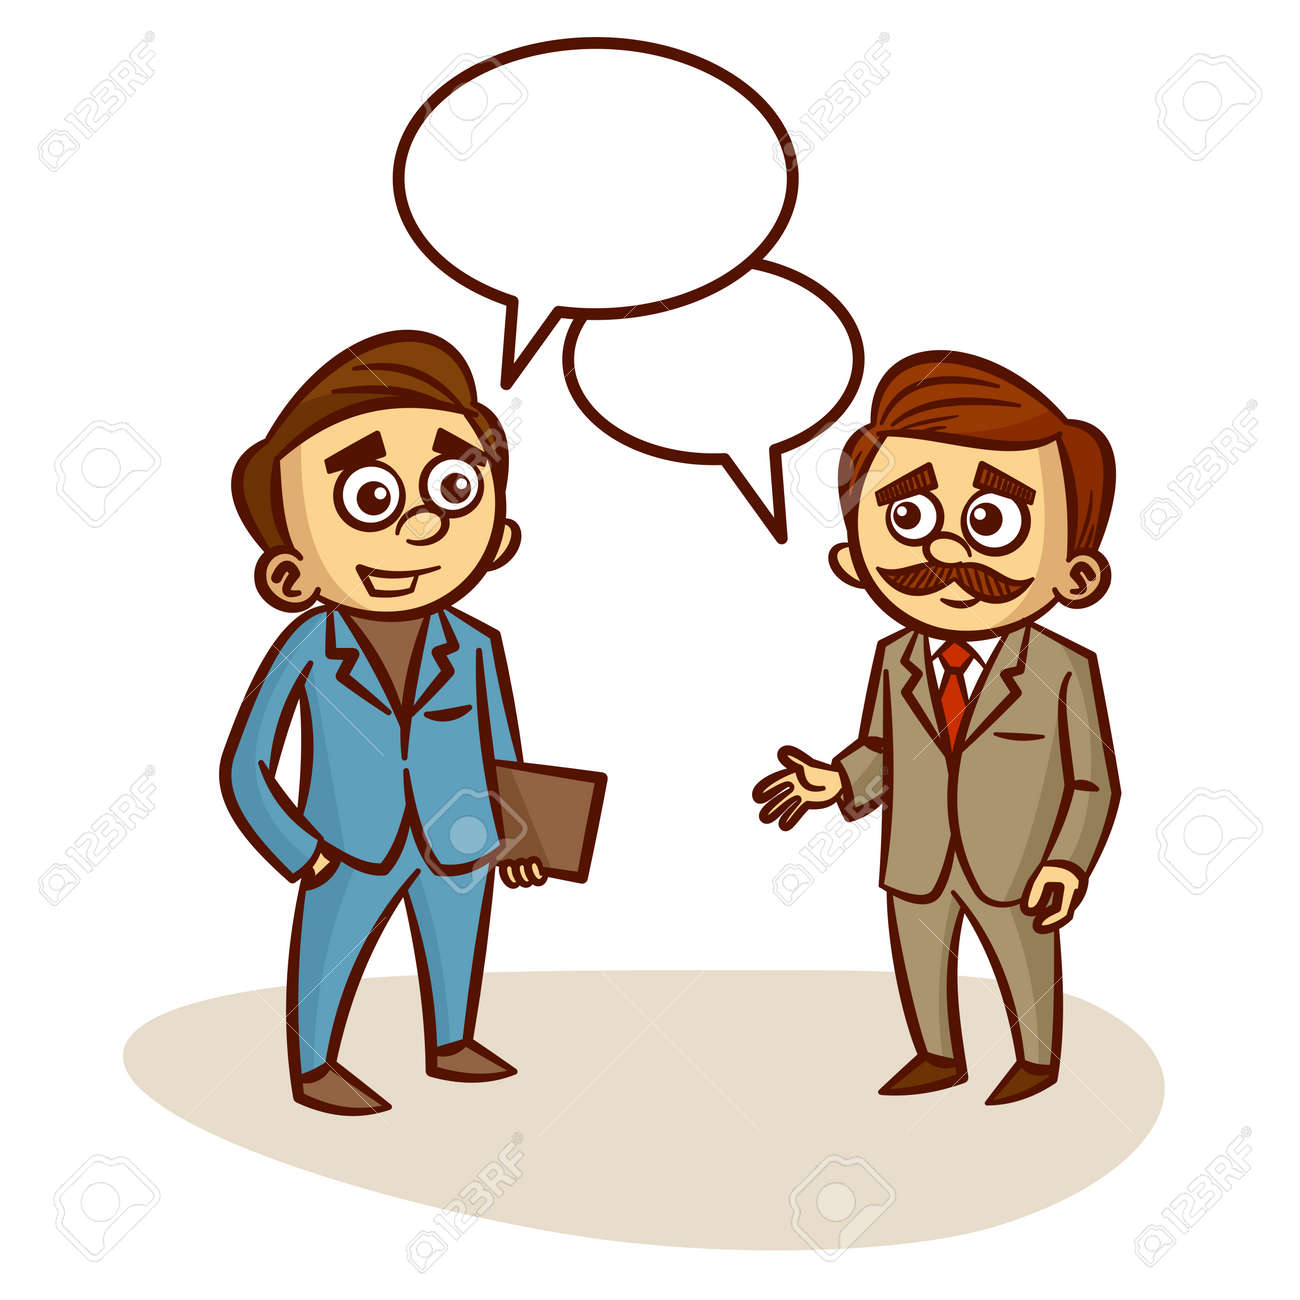 two businessmen talking about business clipart royalty free cliparts rh 123rf com